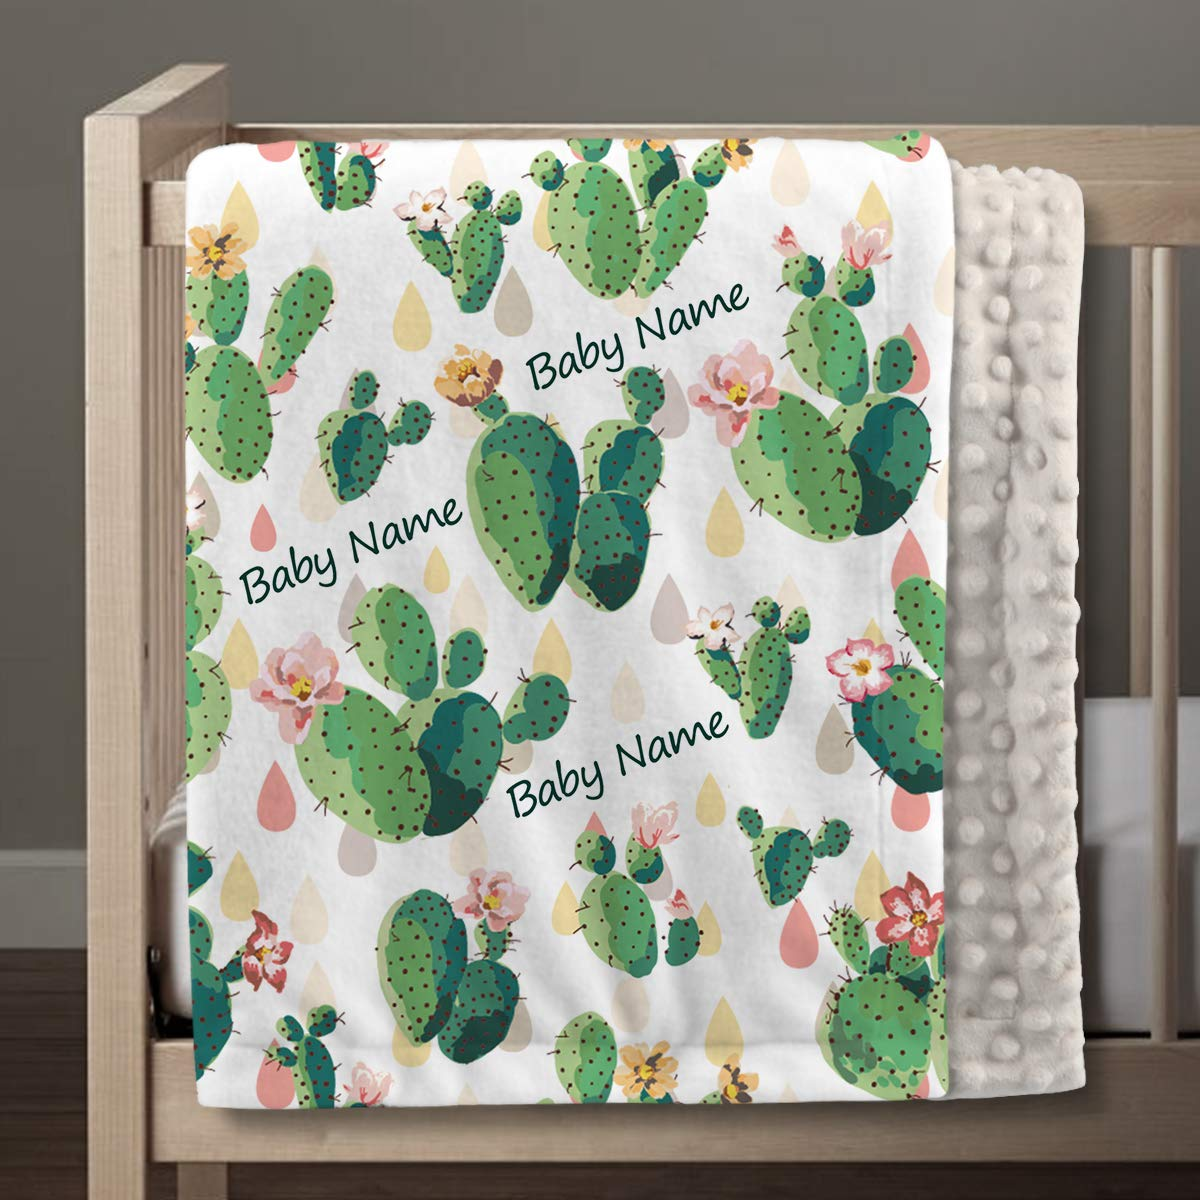 Cactus Personalized Baby Blankets for Boys with Name, Customized Baby Newborn Gifts, Soft Plush and Cozy Minky Dot, 30